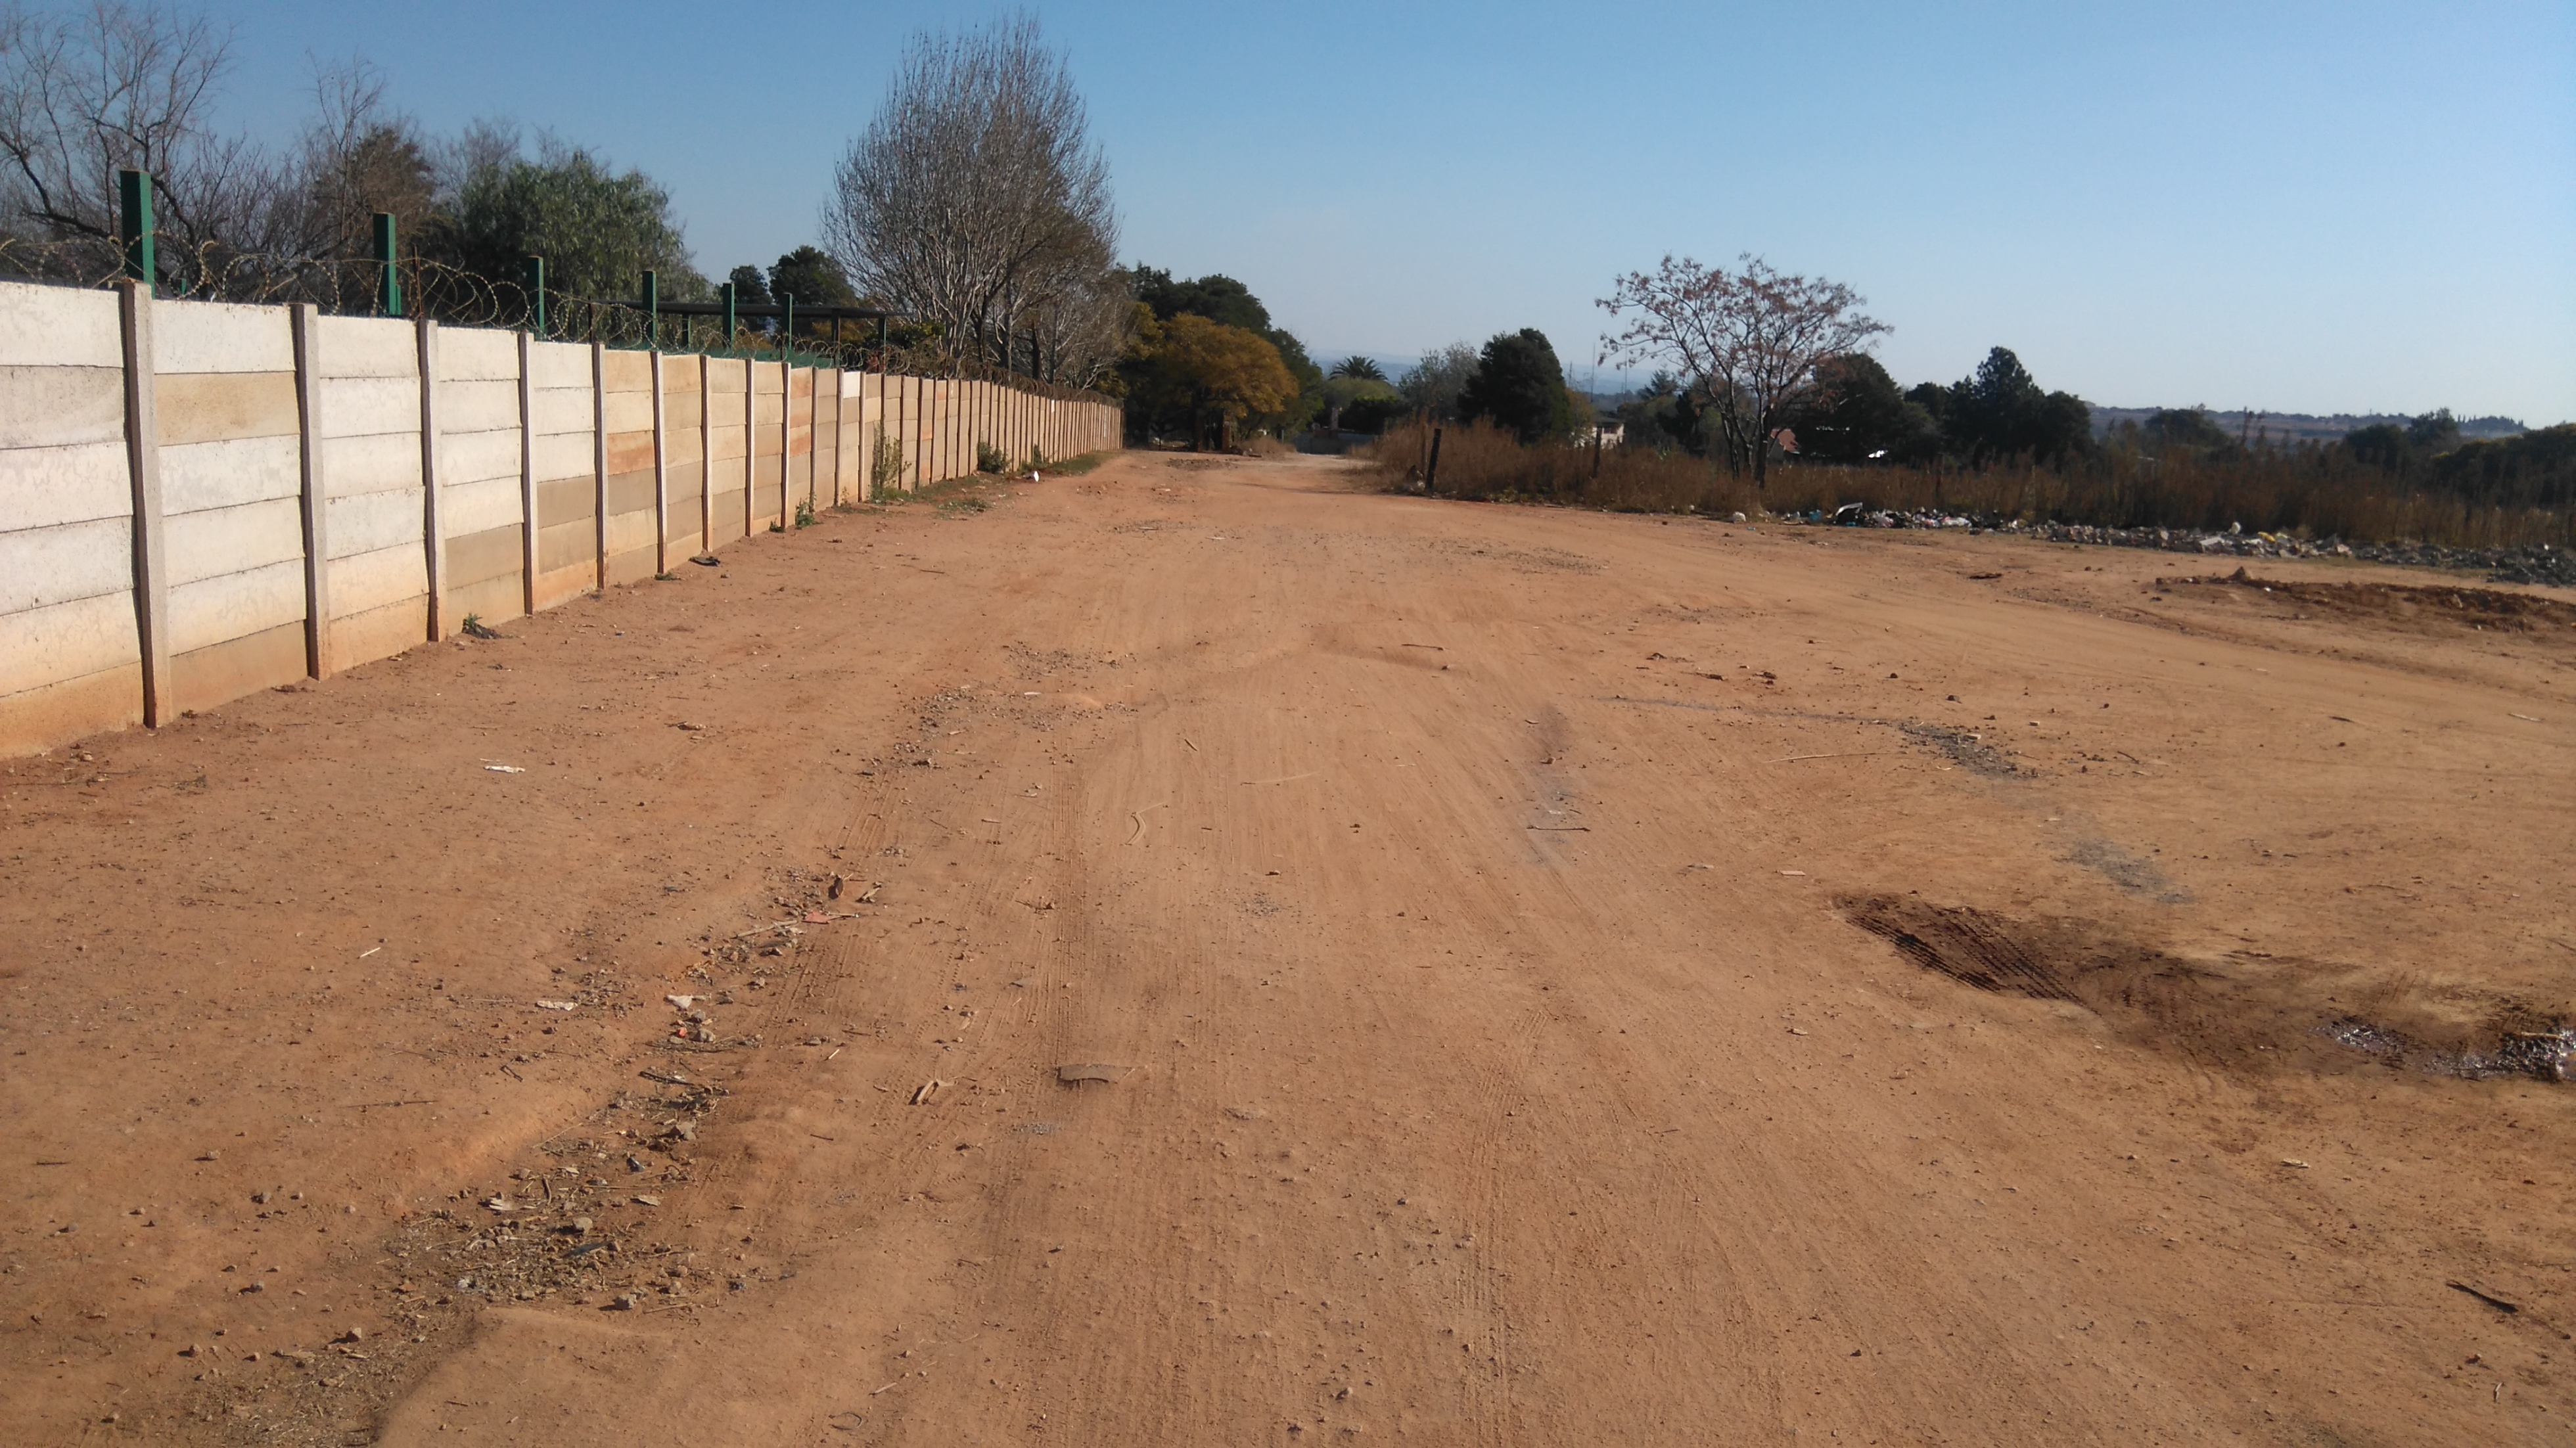 Agricultural Plot with rental income